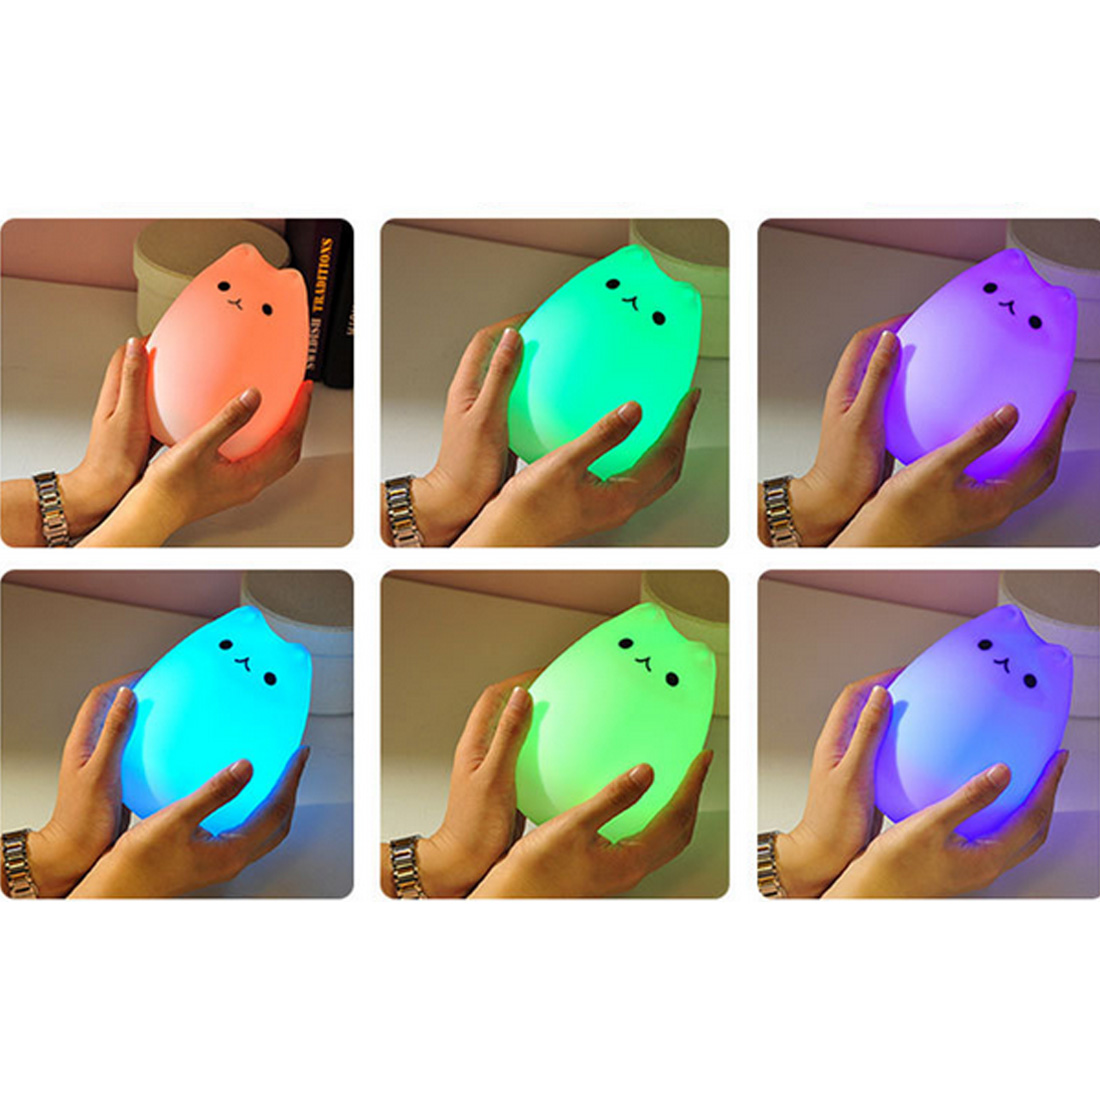 Bedroom Light 1pc Colorful Cat Silicone LED Night Light Rechargeable Touch Sensor Light 2 Modes Children Cute Night Lamp desk night lights baby room colorful cat silicone led night light rechargeable touch sensor light 2 modes children kids bed lamp